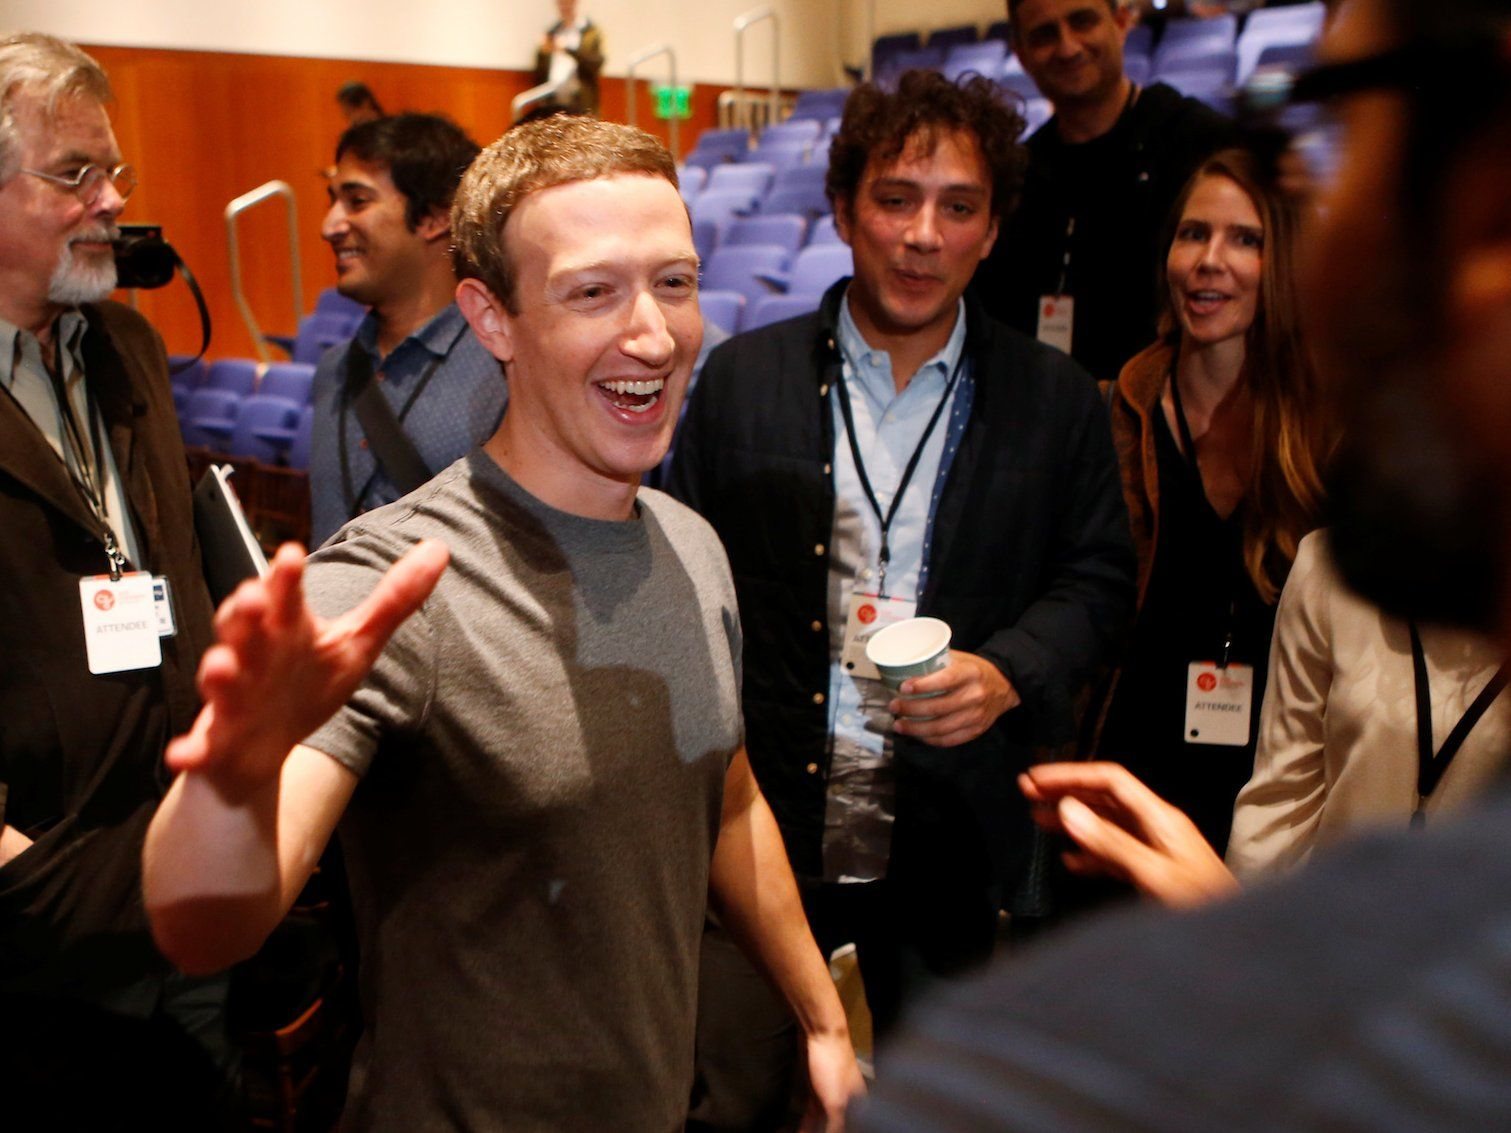 Facebook S News Feed Change Wiped Out 25 Billion â But It